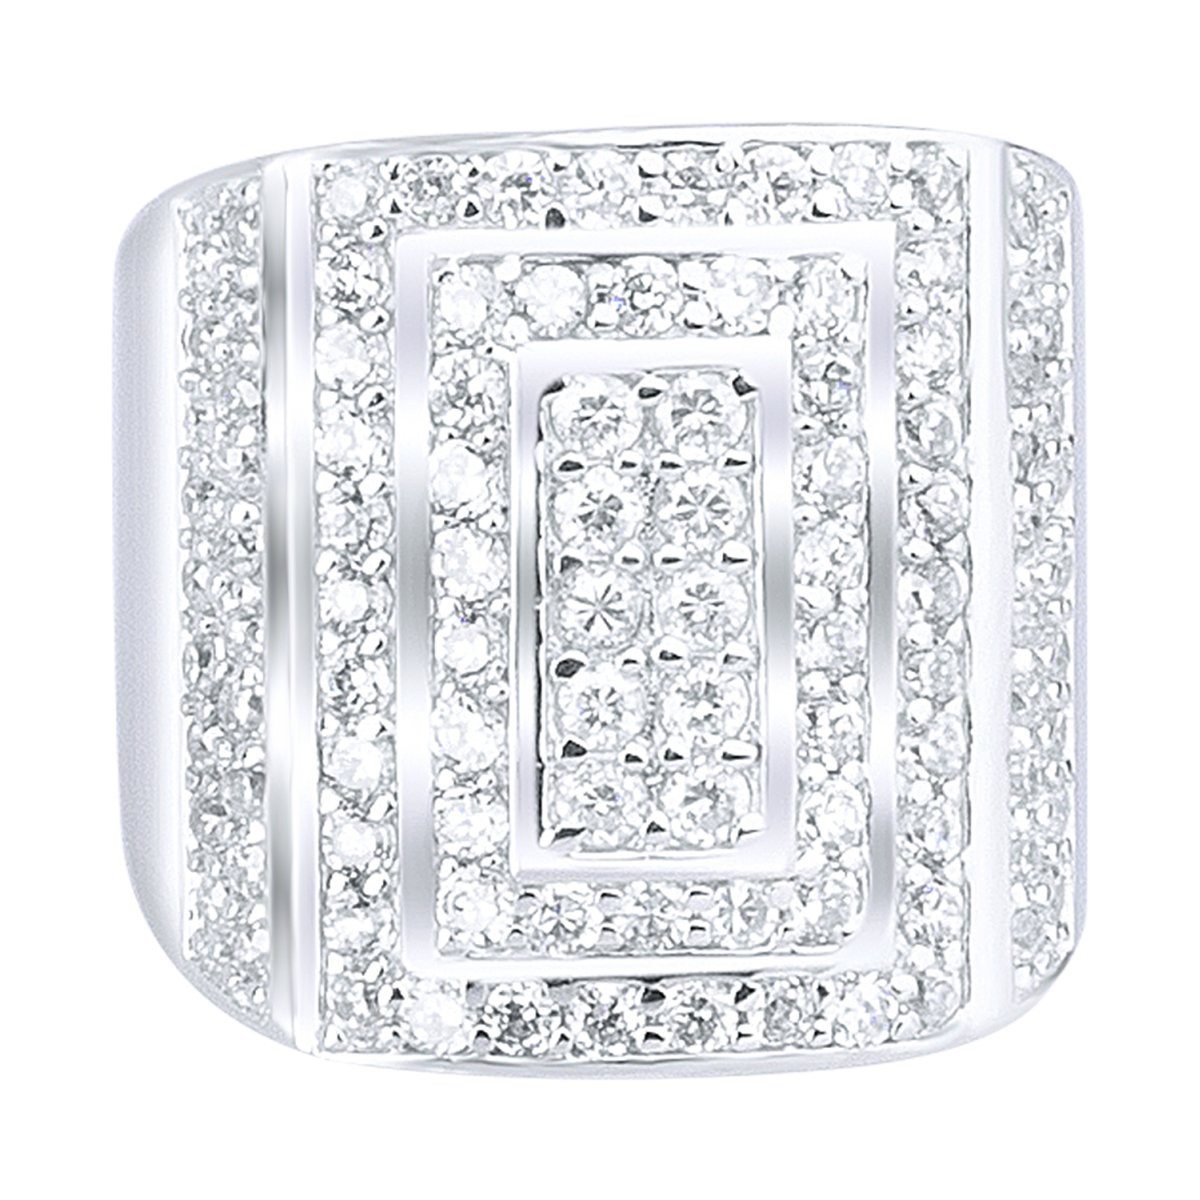 Iced Out Sterling 925er Silber Pave Ring - LONG ICE - 10